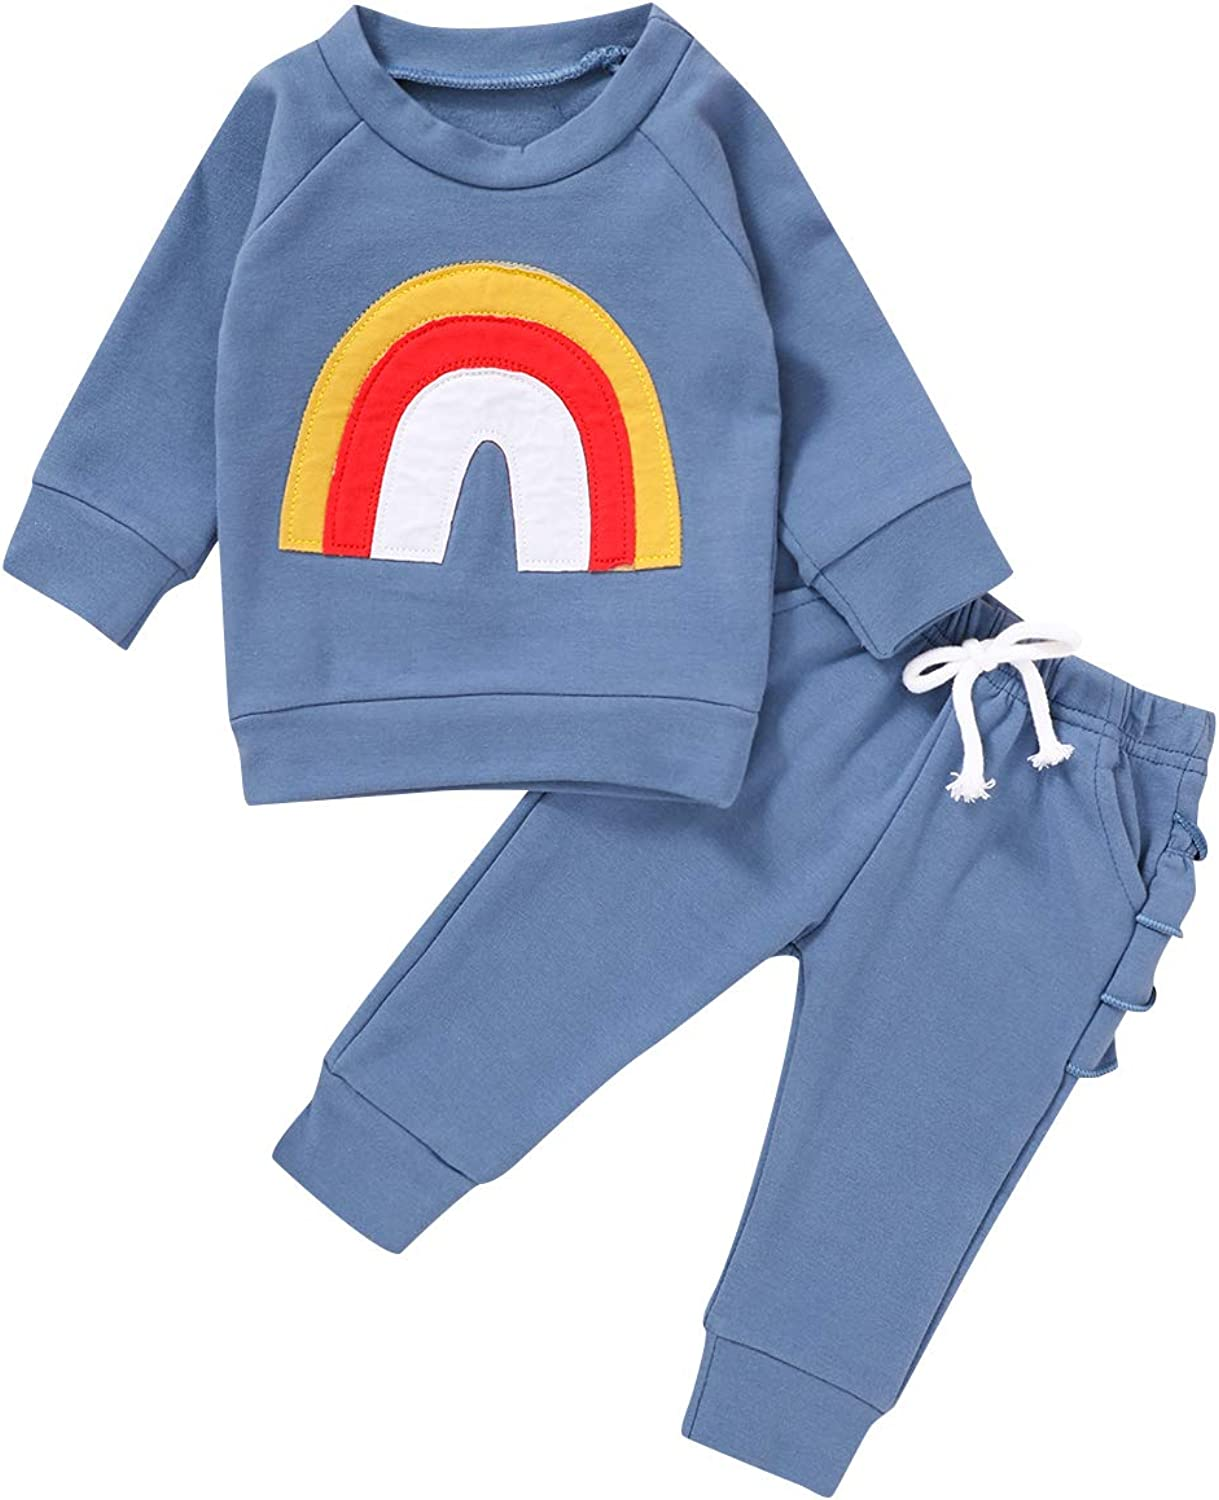 Toddler Baby Girl Boys Cotton Sweatshirt Rainbow Print Long Sleeve Shirts Pullover Top Fall Winter Clothes